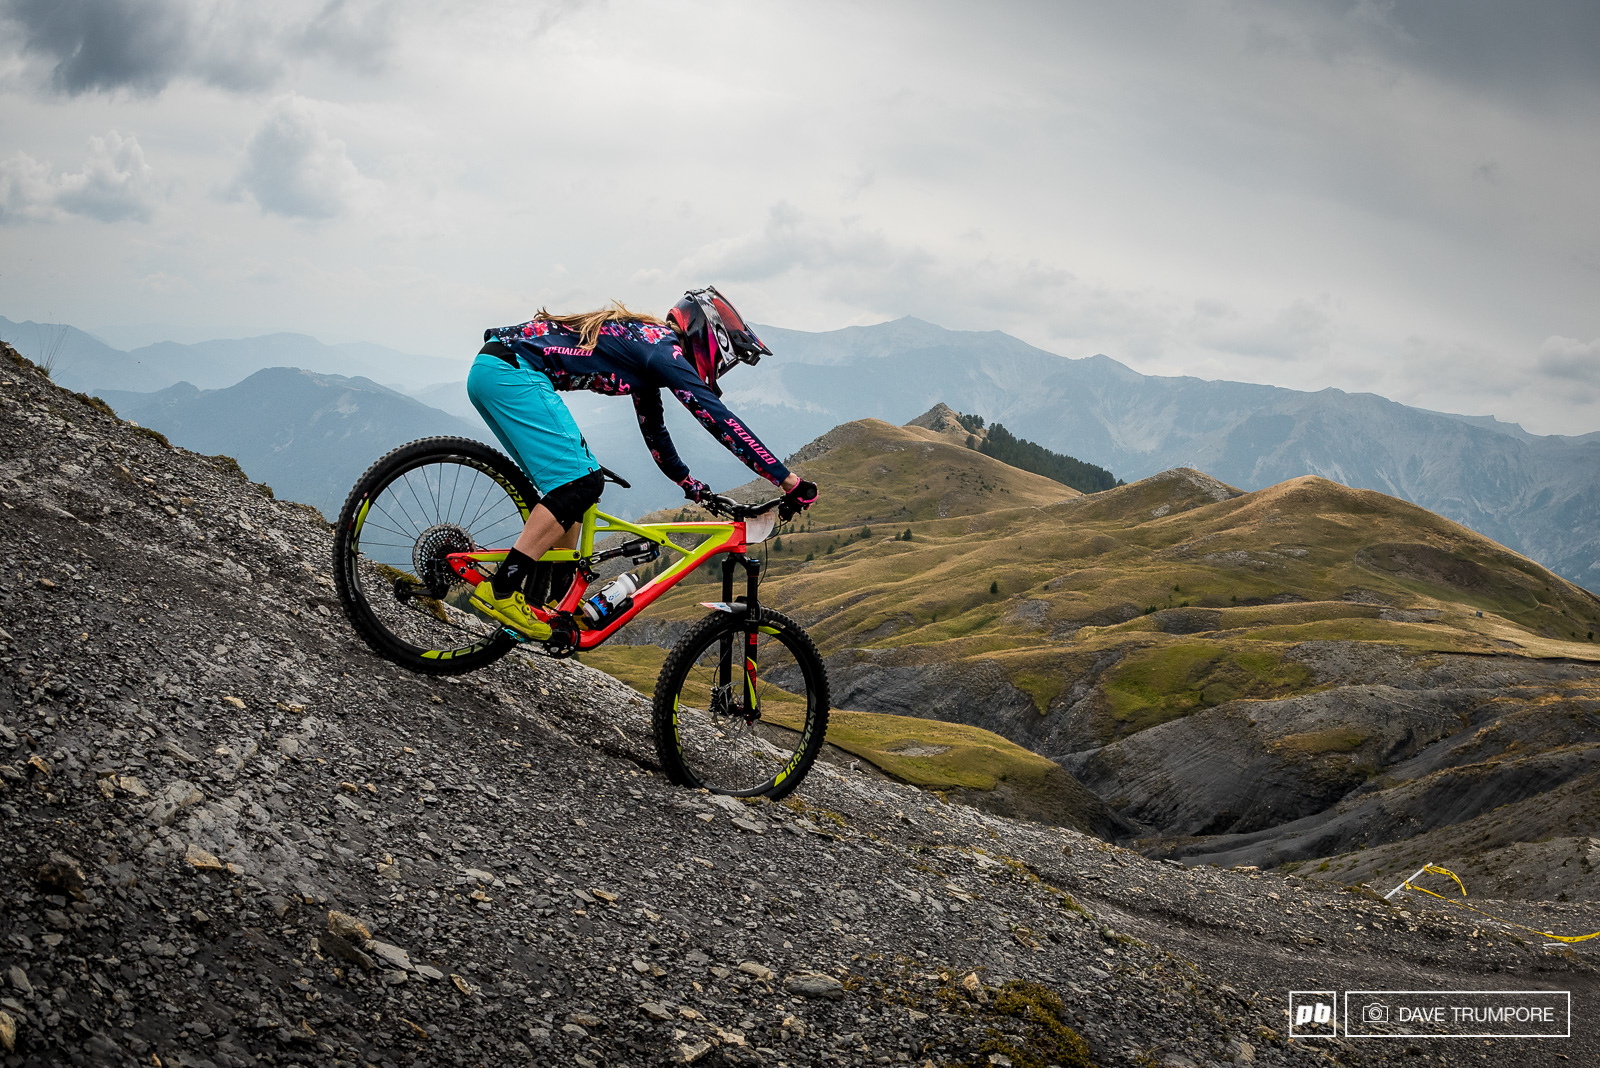 Hannah barnes drops in while the picturesque Martime Alps loom in the background.